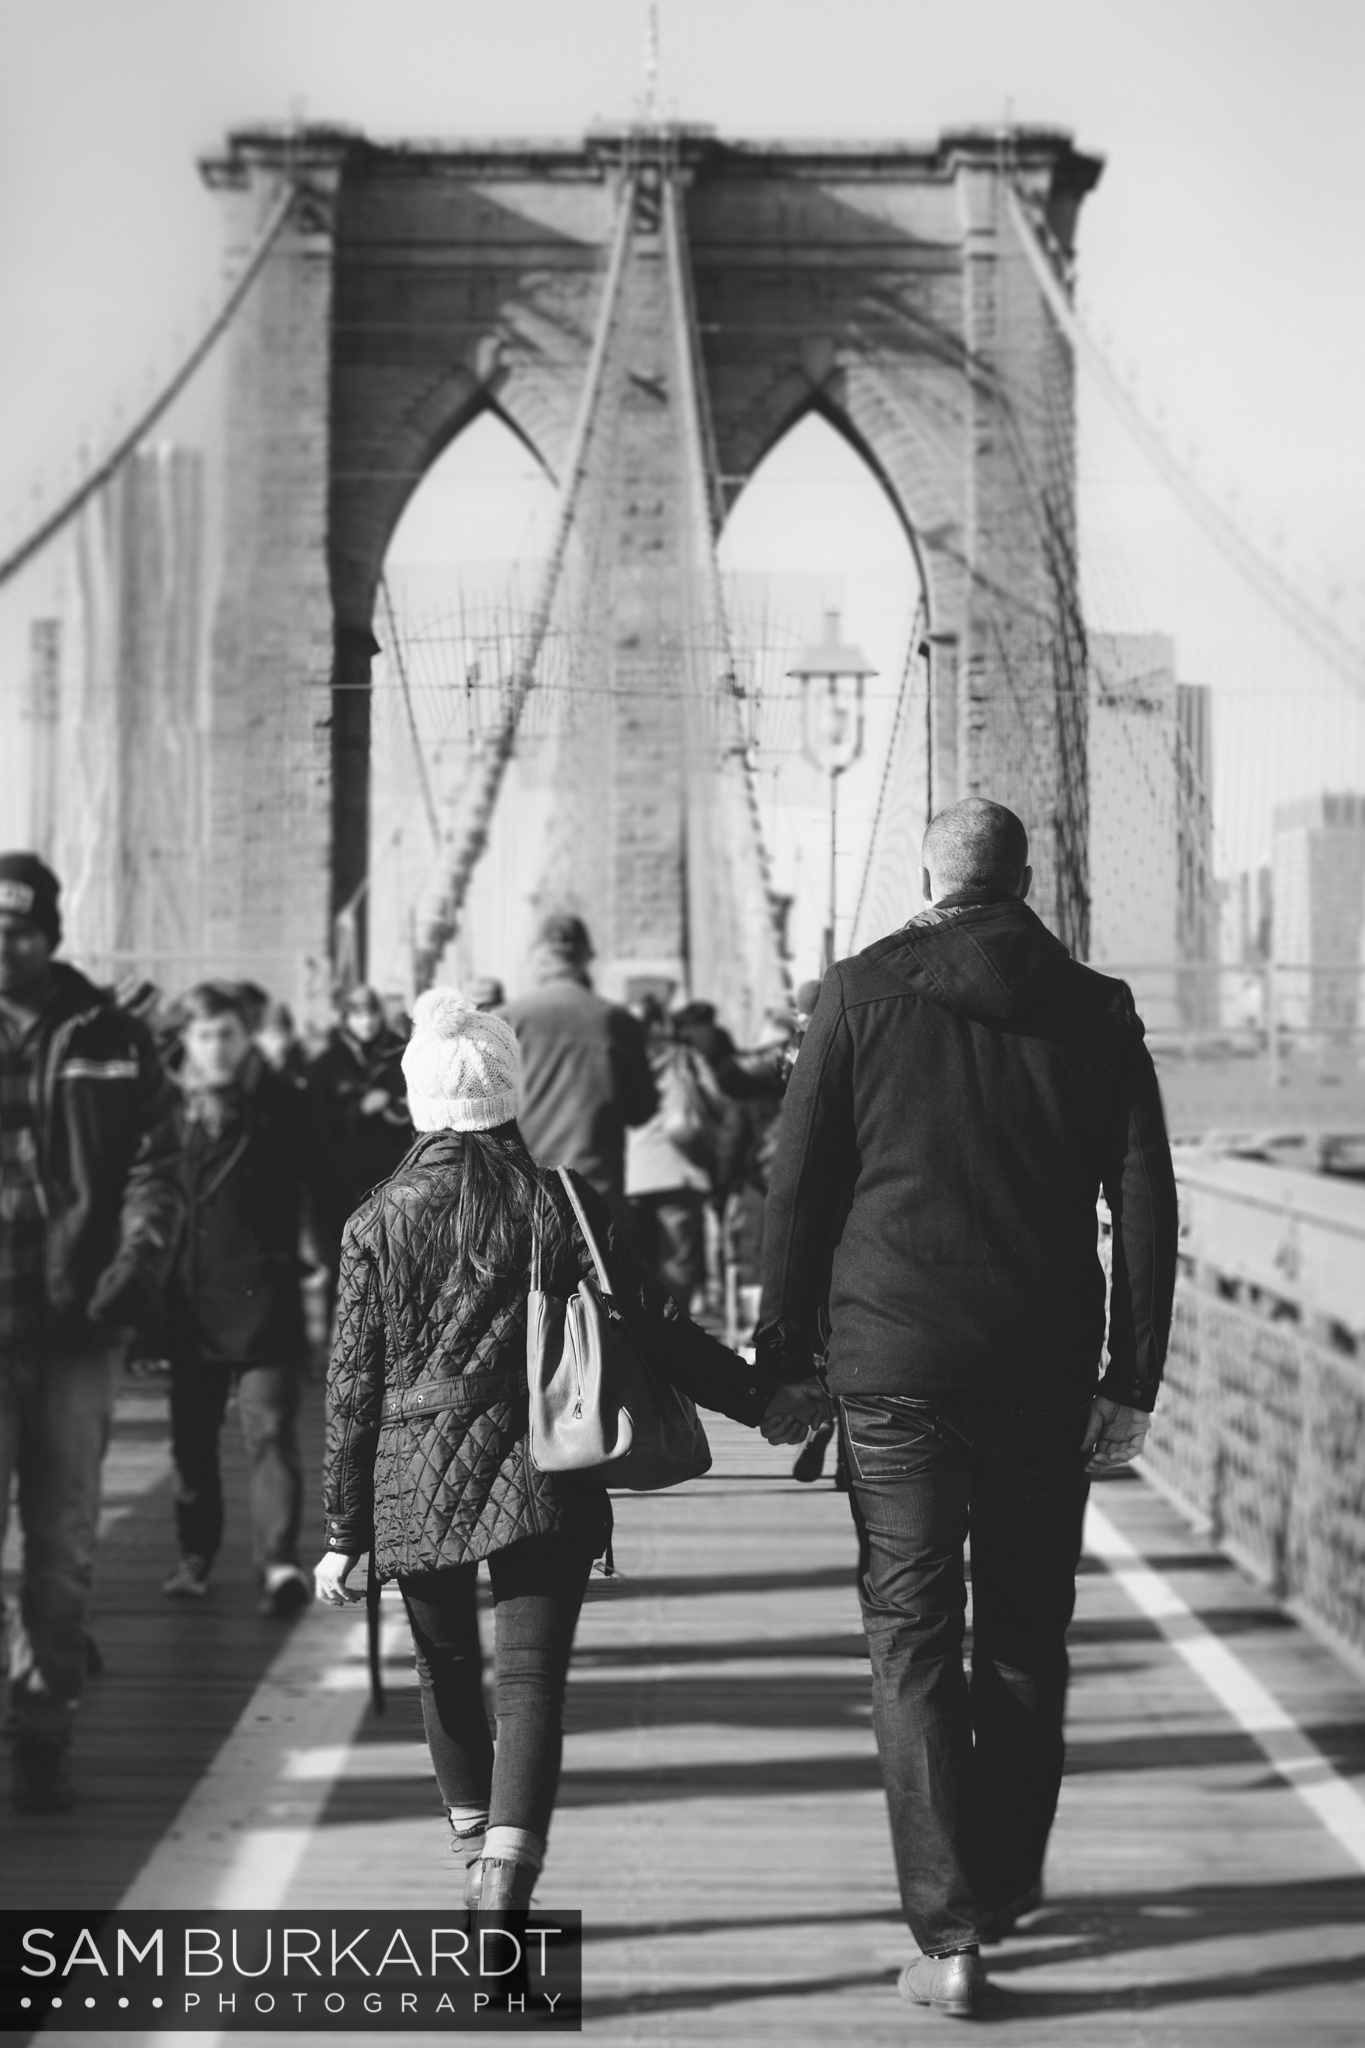 samburkardt_brooklyn_bridge_new_york_engagement_proposal_skyline_0015.jpg